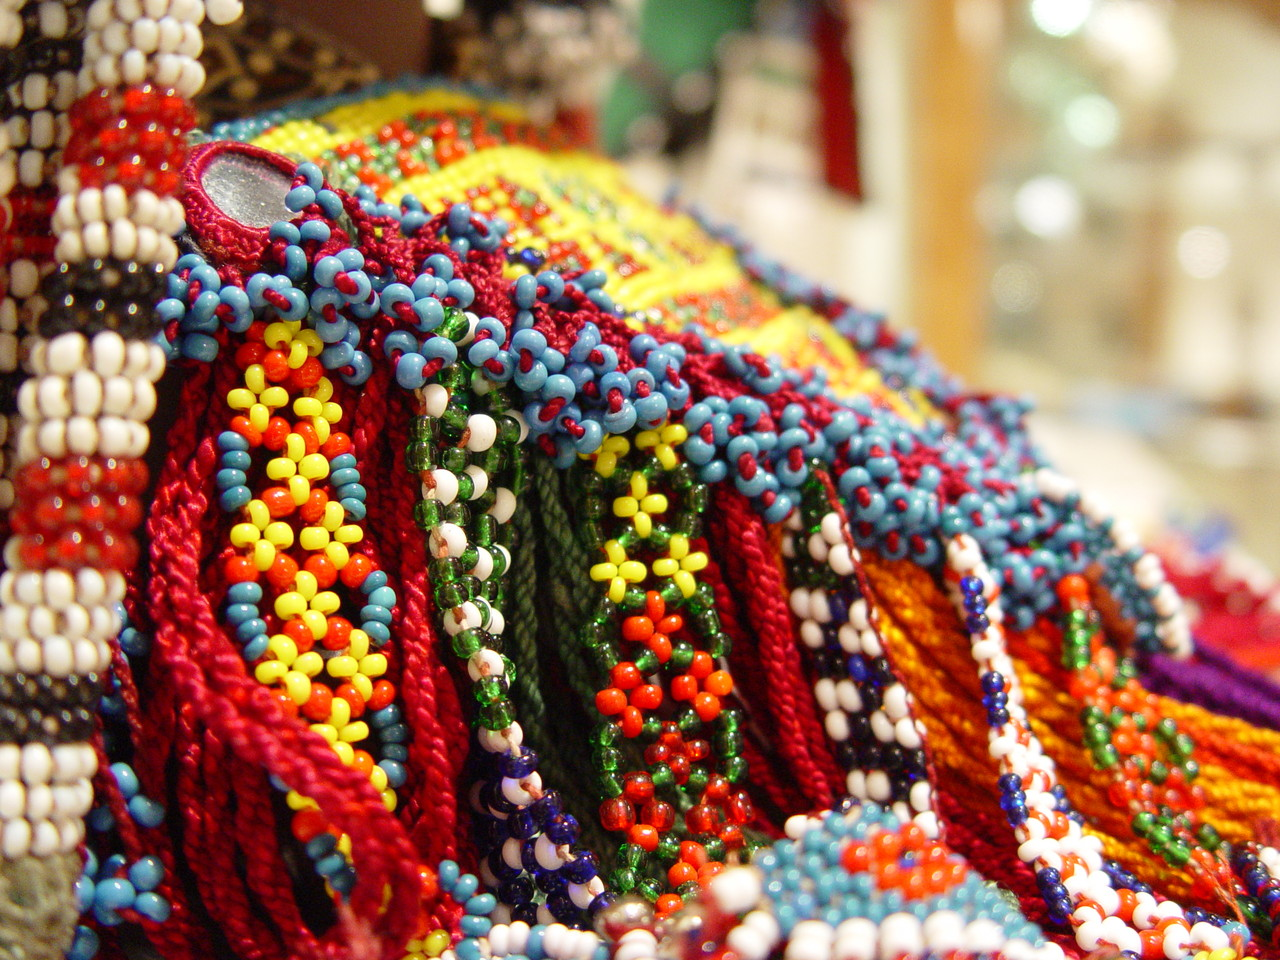 Beads as displayed for many cultures